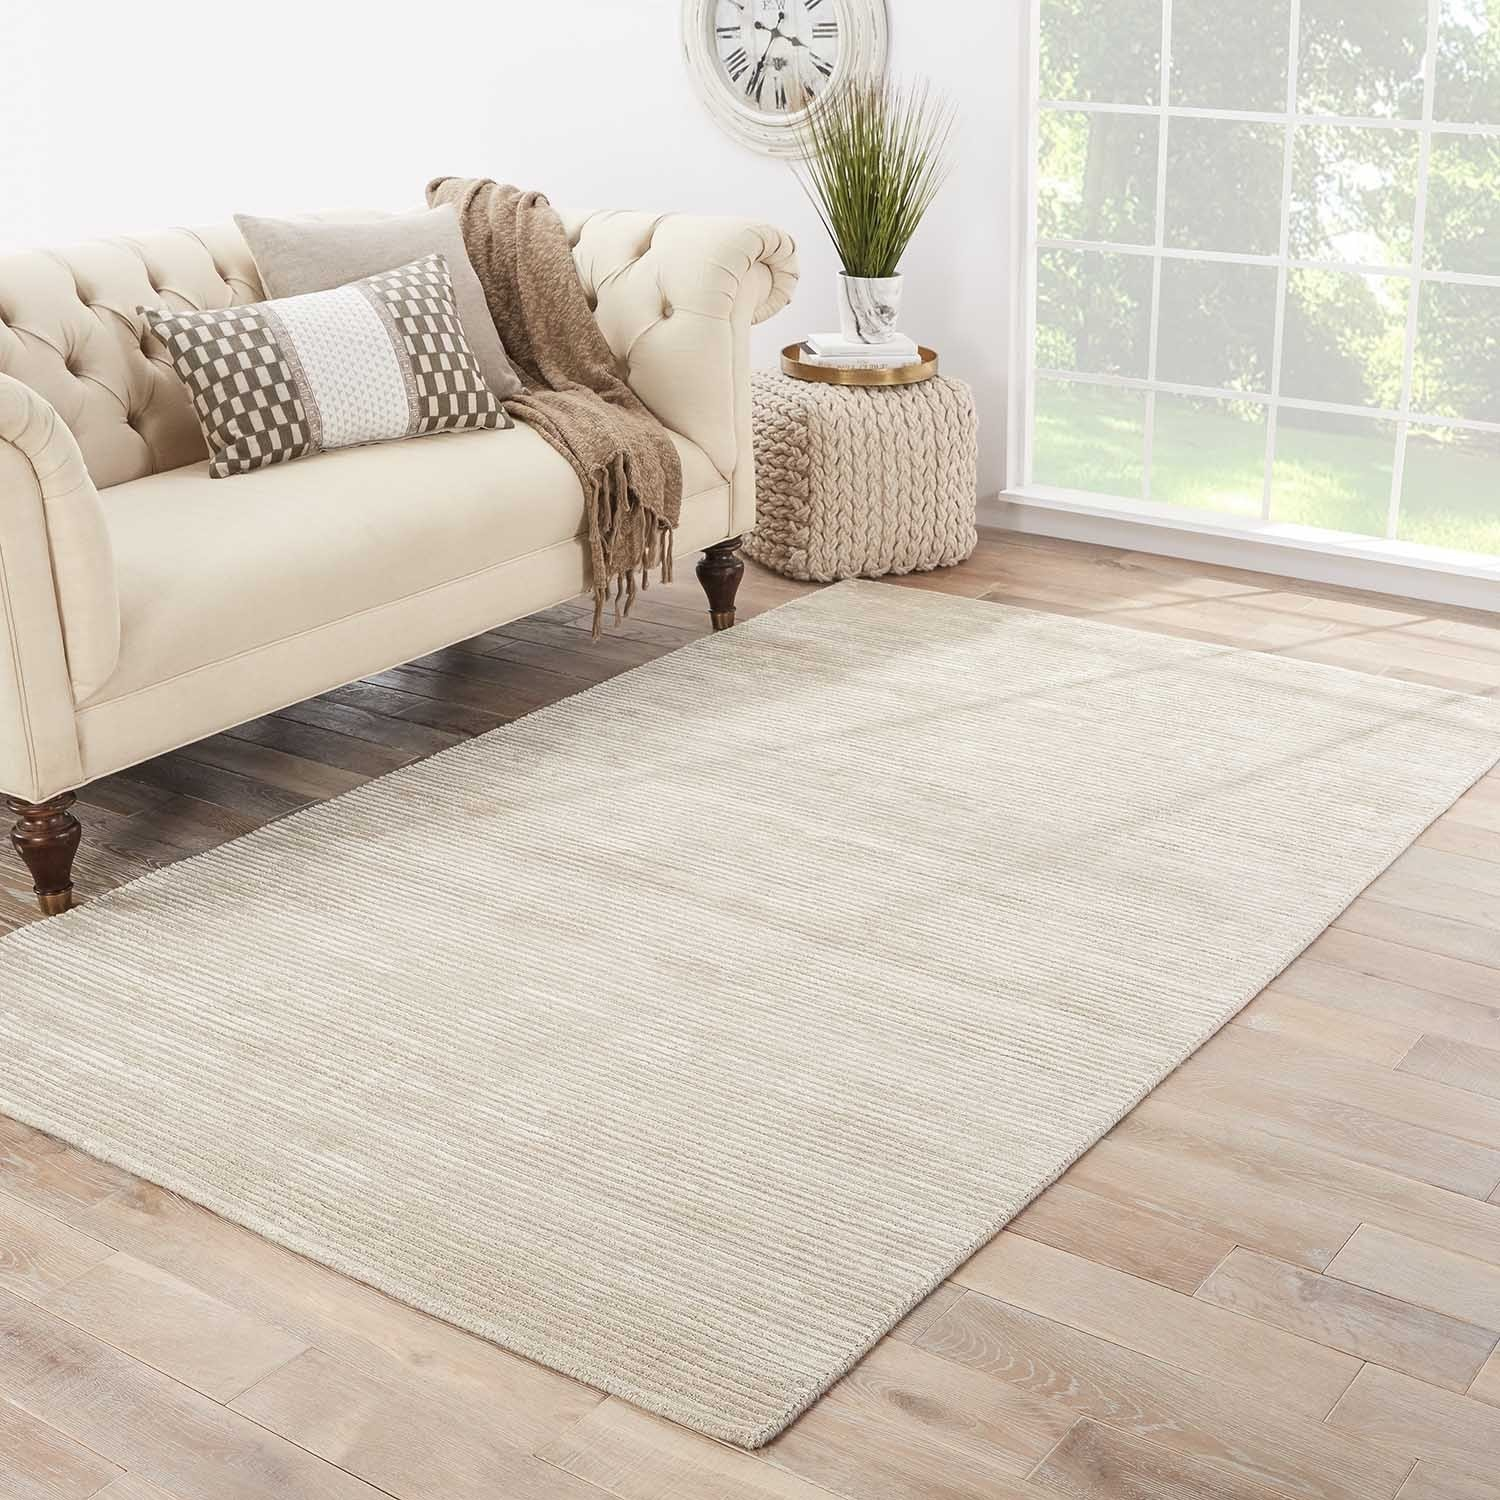 Phase Handmade Solid White/ Taupe Area Rug (9 X 12) - 810 x 119 (White/Taupe - 810 x 119)